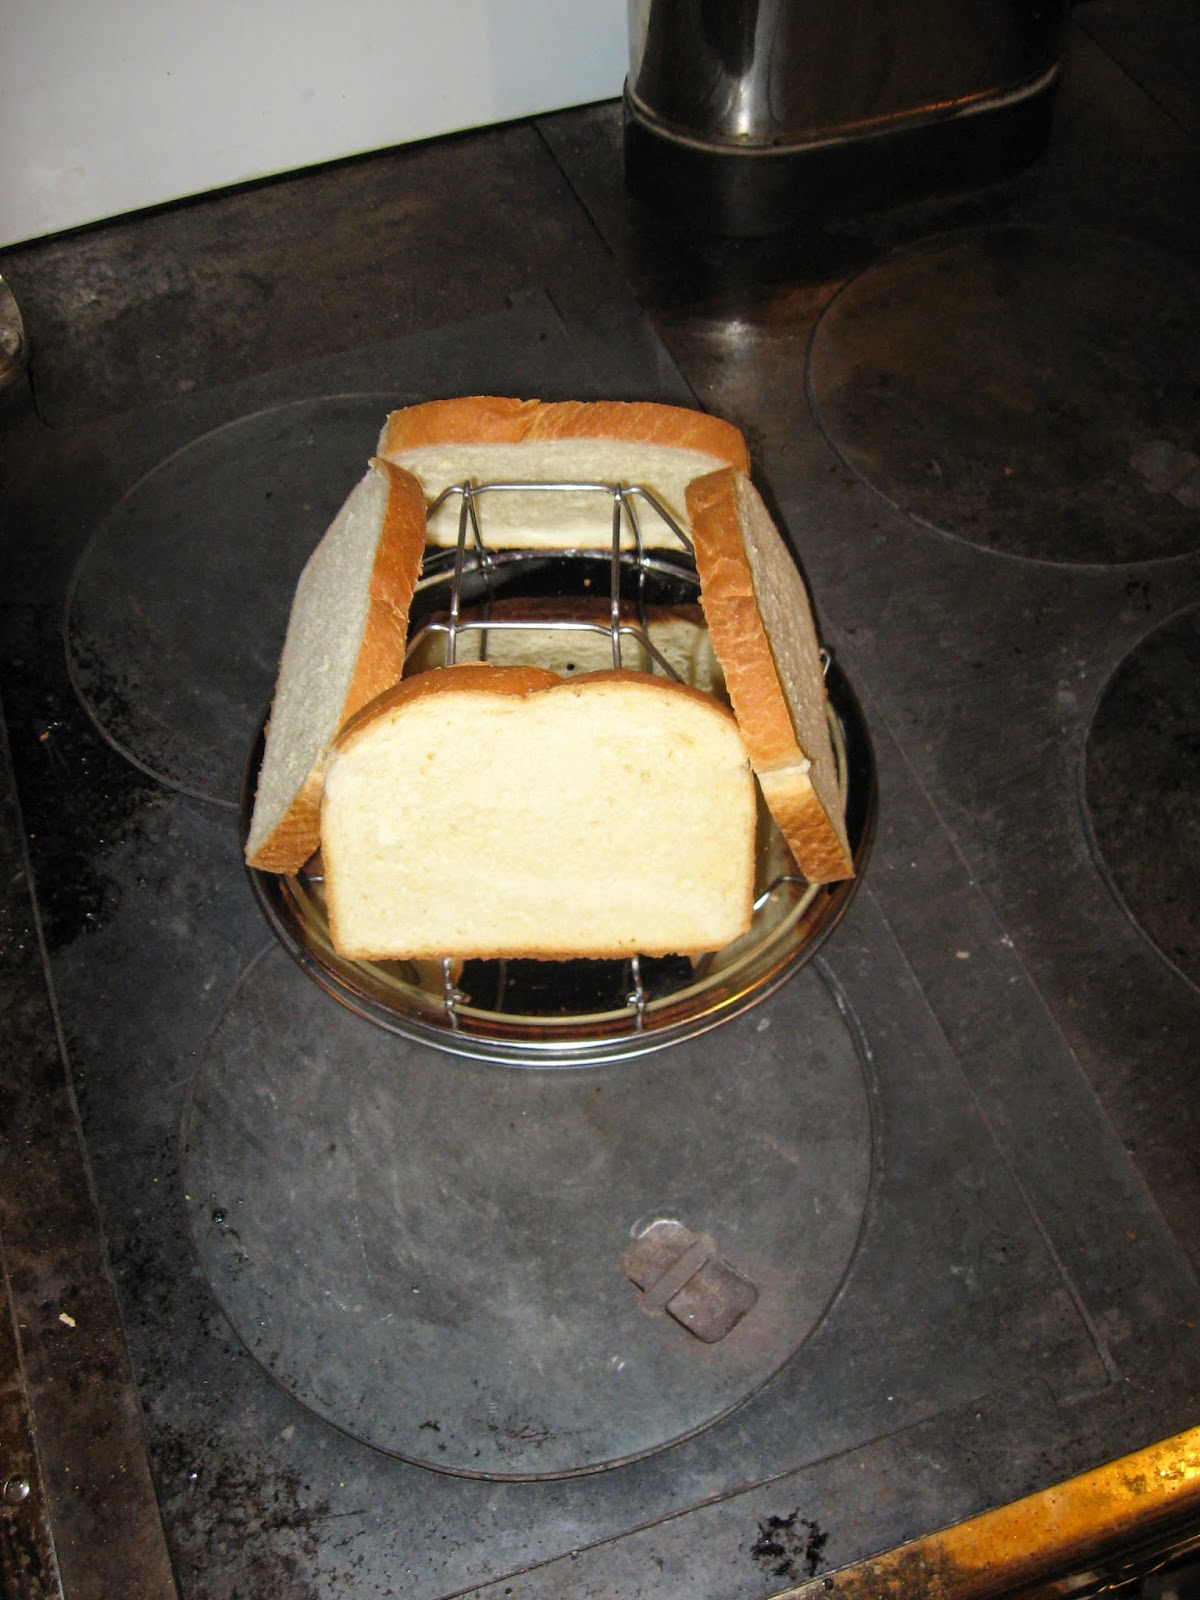 I Consider The Stovetop Toaster Method Quite Unsatisfactory For A  Woodburning Cookstove I Had Asked For This Toaster As A Christmas Gift  From My Inlaws